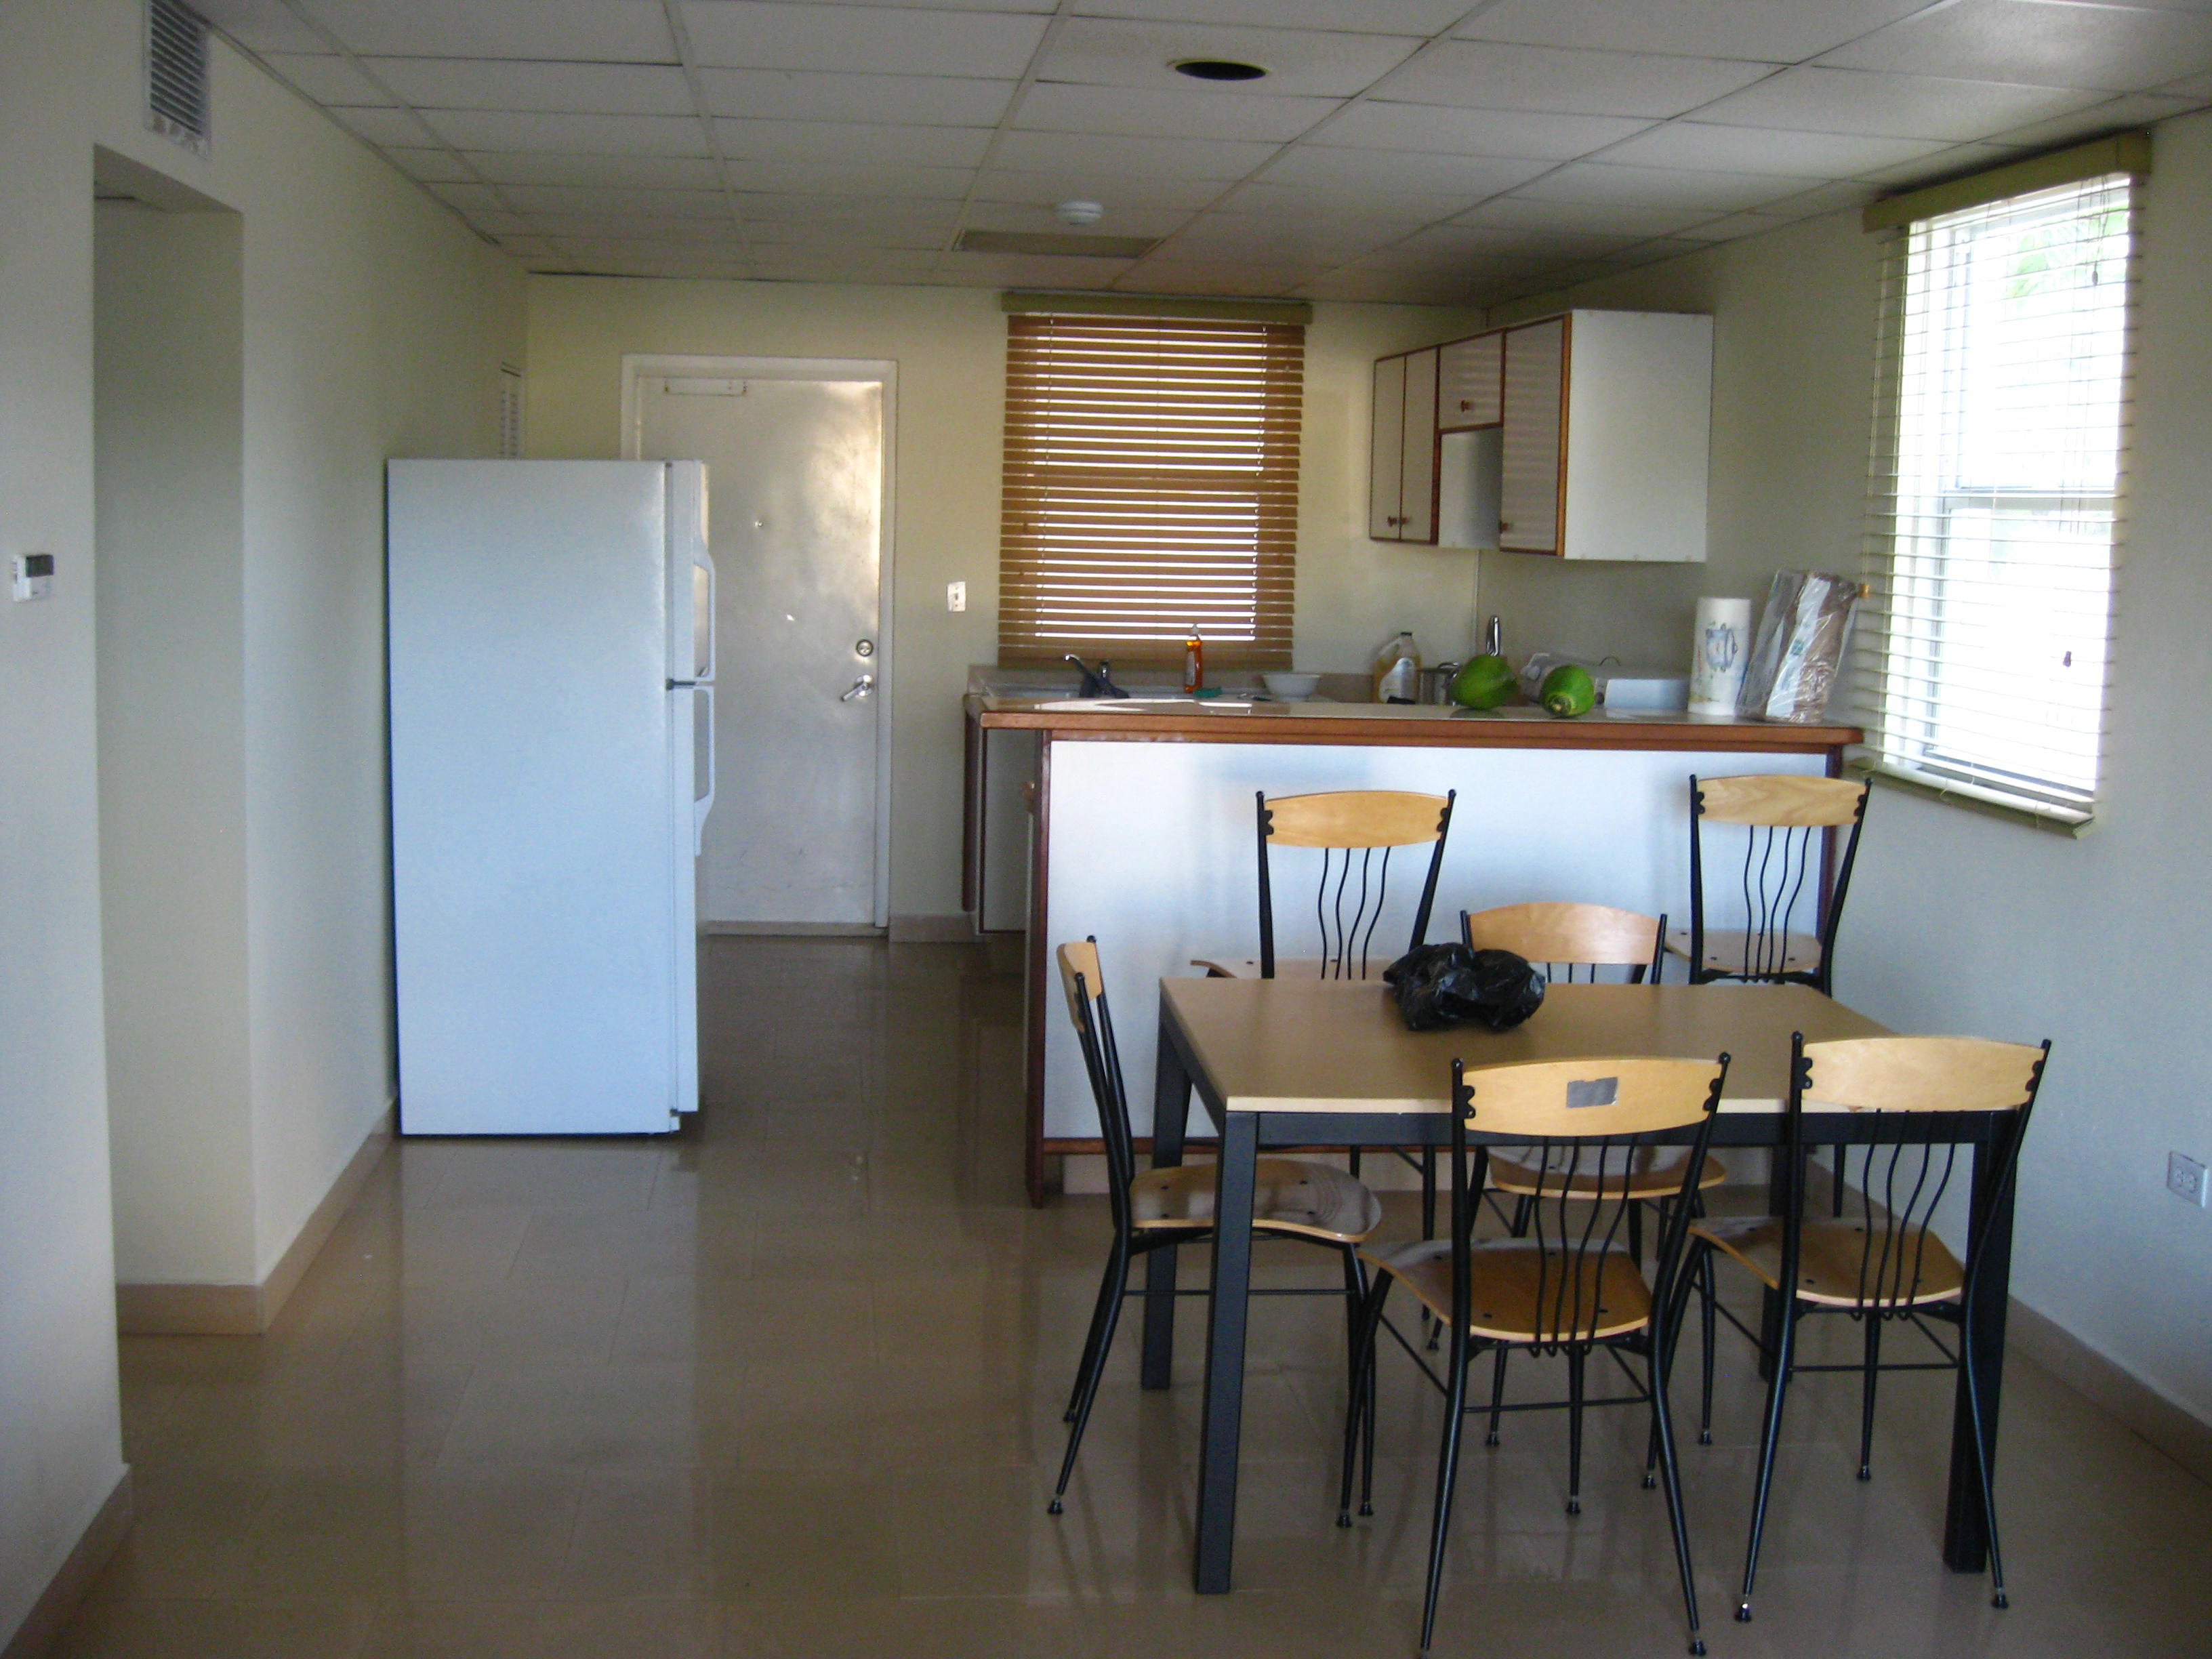 Image gallery dorm kitchen for Small room essentials